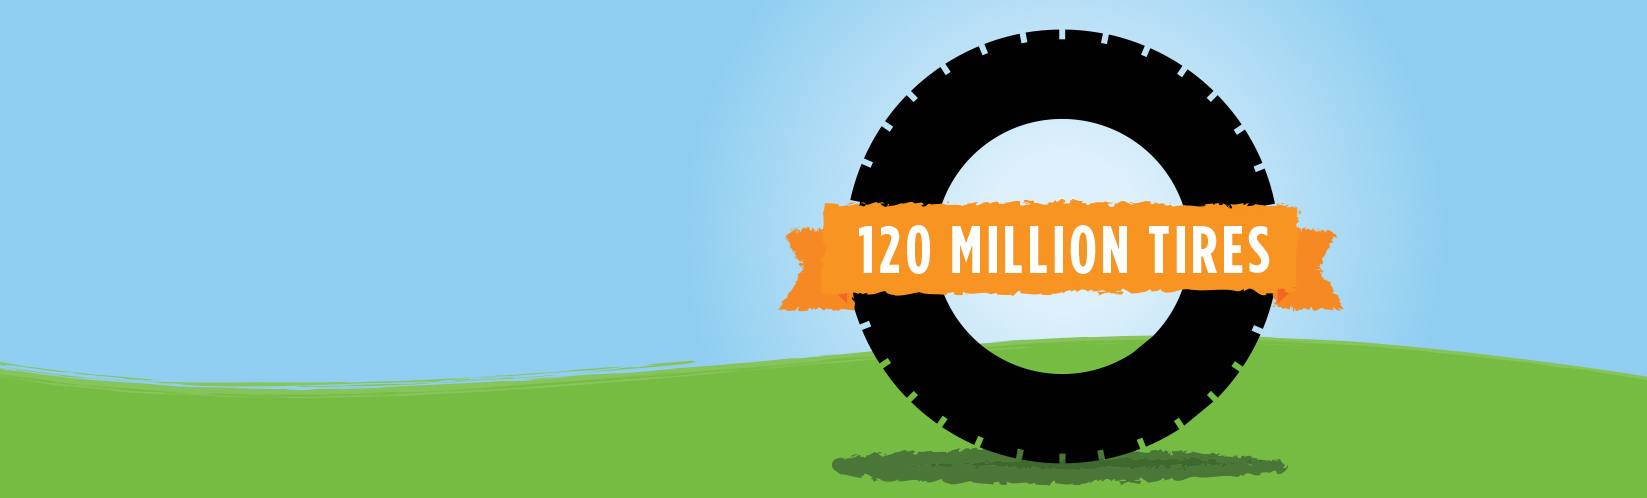 TIME TO CELEBRATE!<BR>WITH YOUR HELP, WE'VE RECYCLED 100 MILLION TIRES